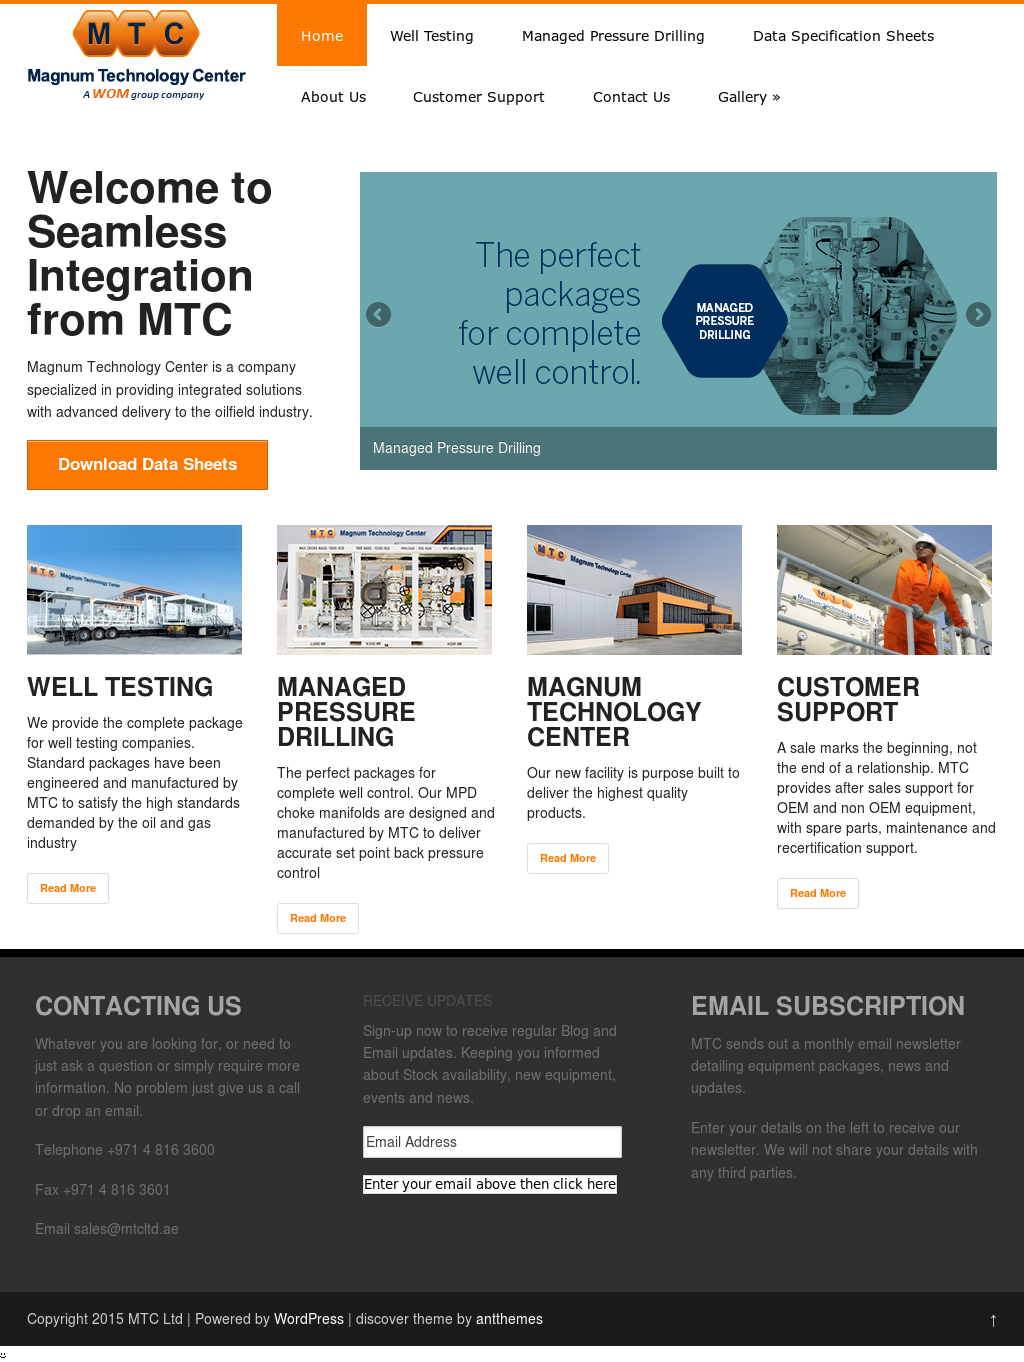 Mtcltd Blog Competitors, Revenue and Employees - Owler